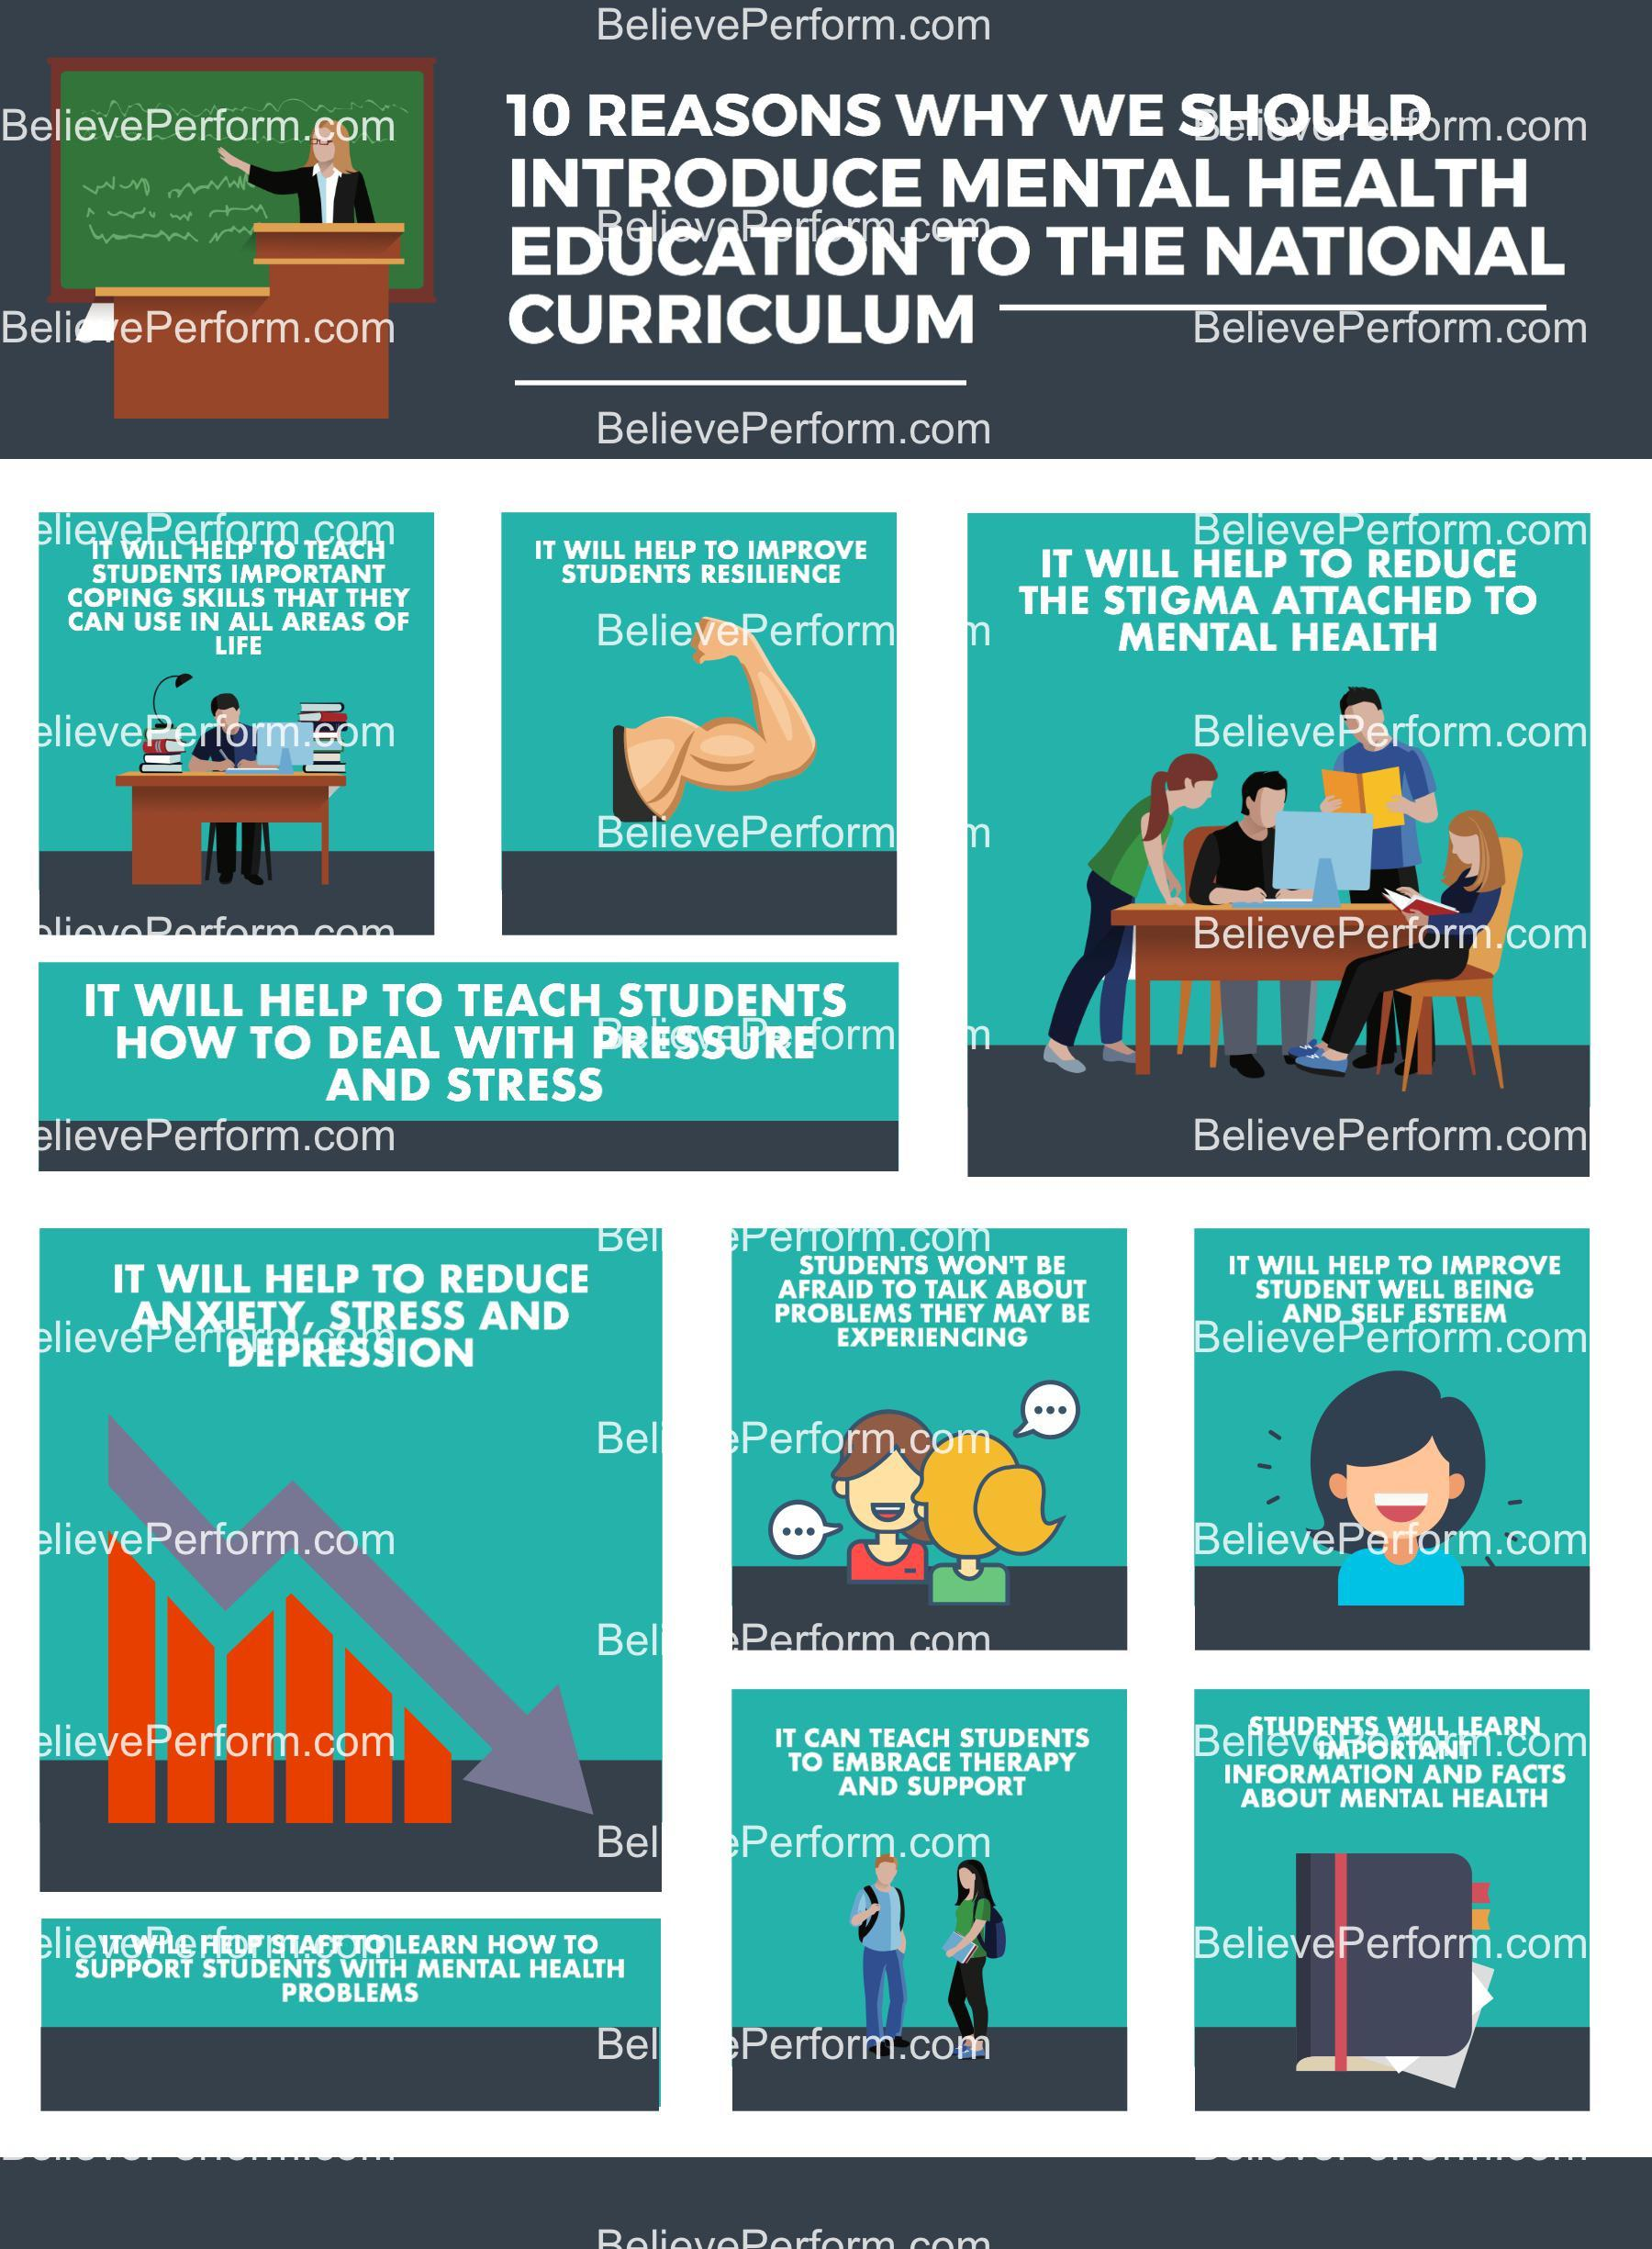 10 reasons why we should introduce mental health education to the national curriculum